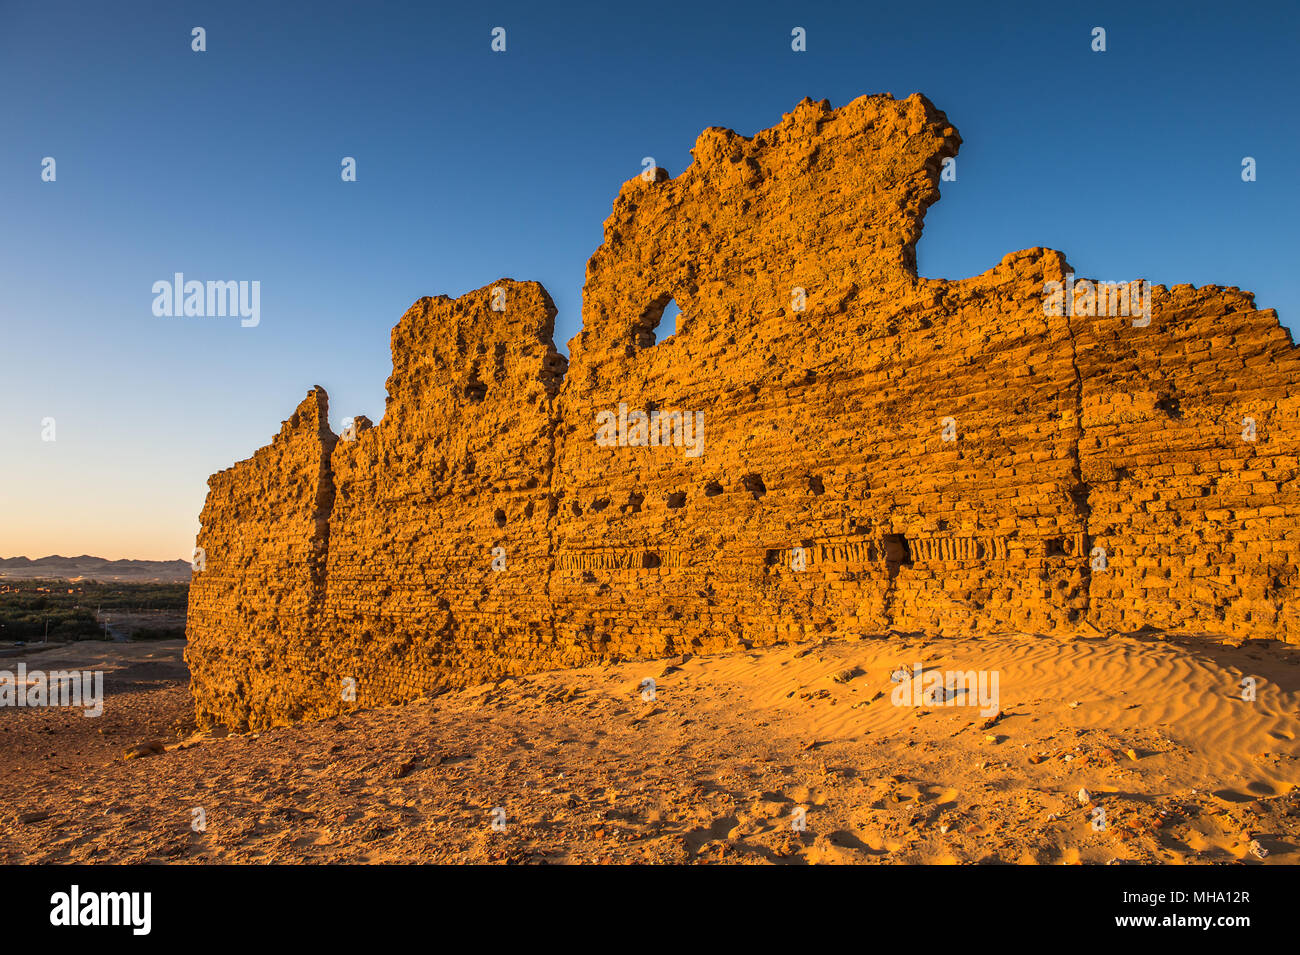 Ruins of the Nadora Temple in the Kharga Desert of Egypt Stock Photo